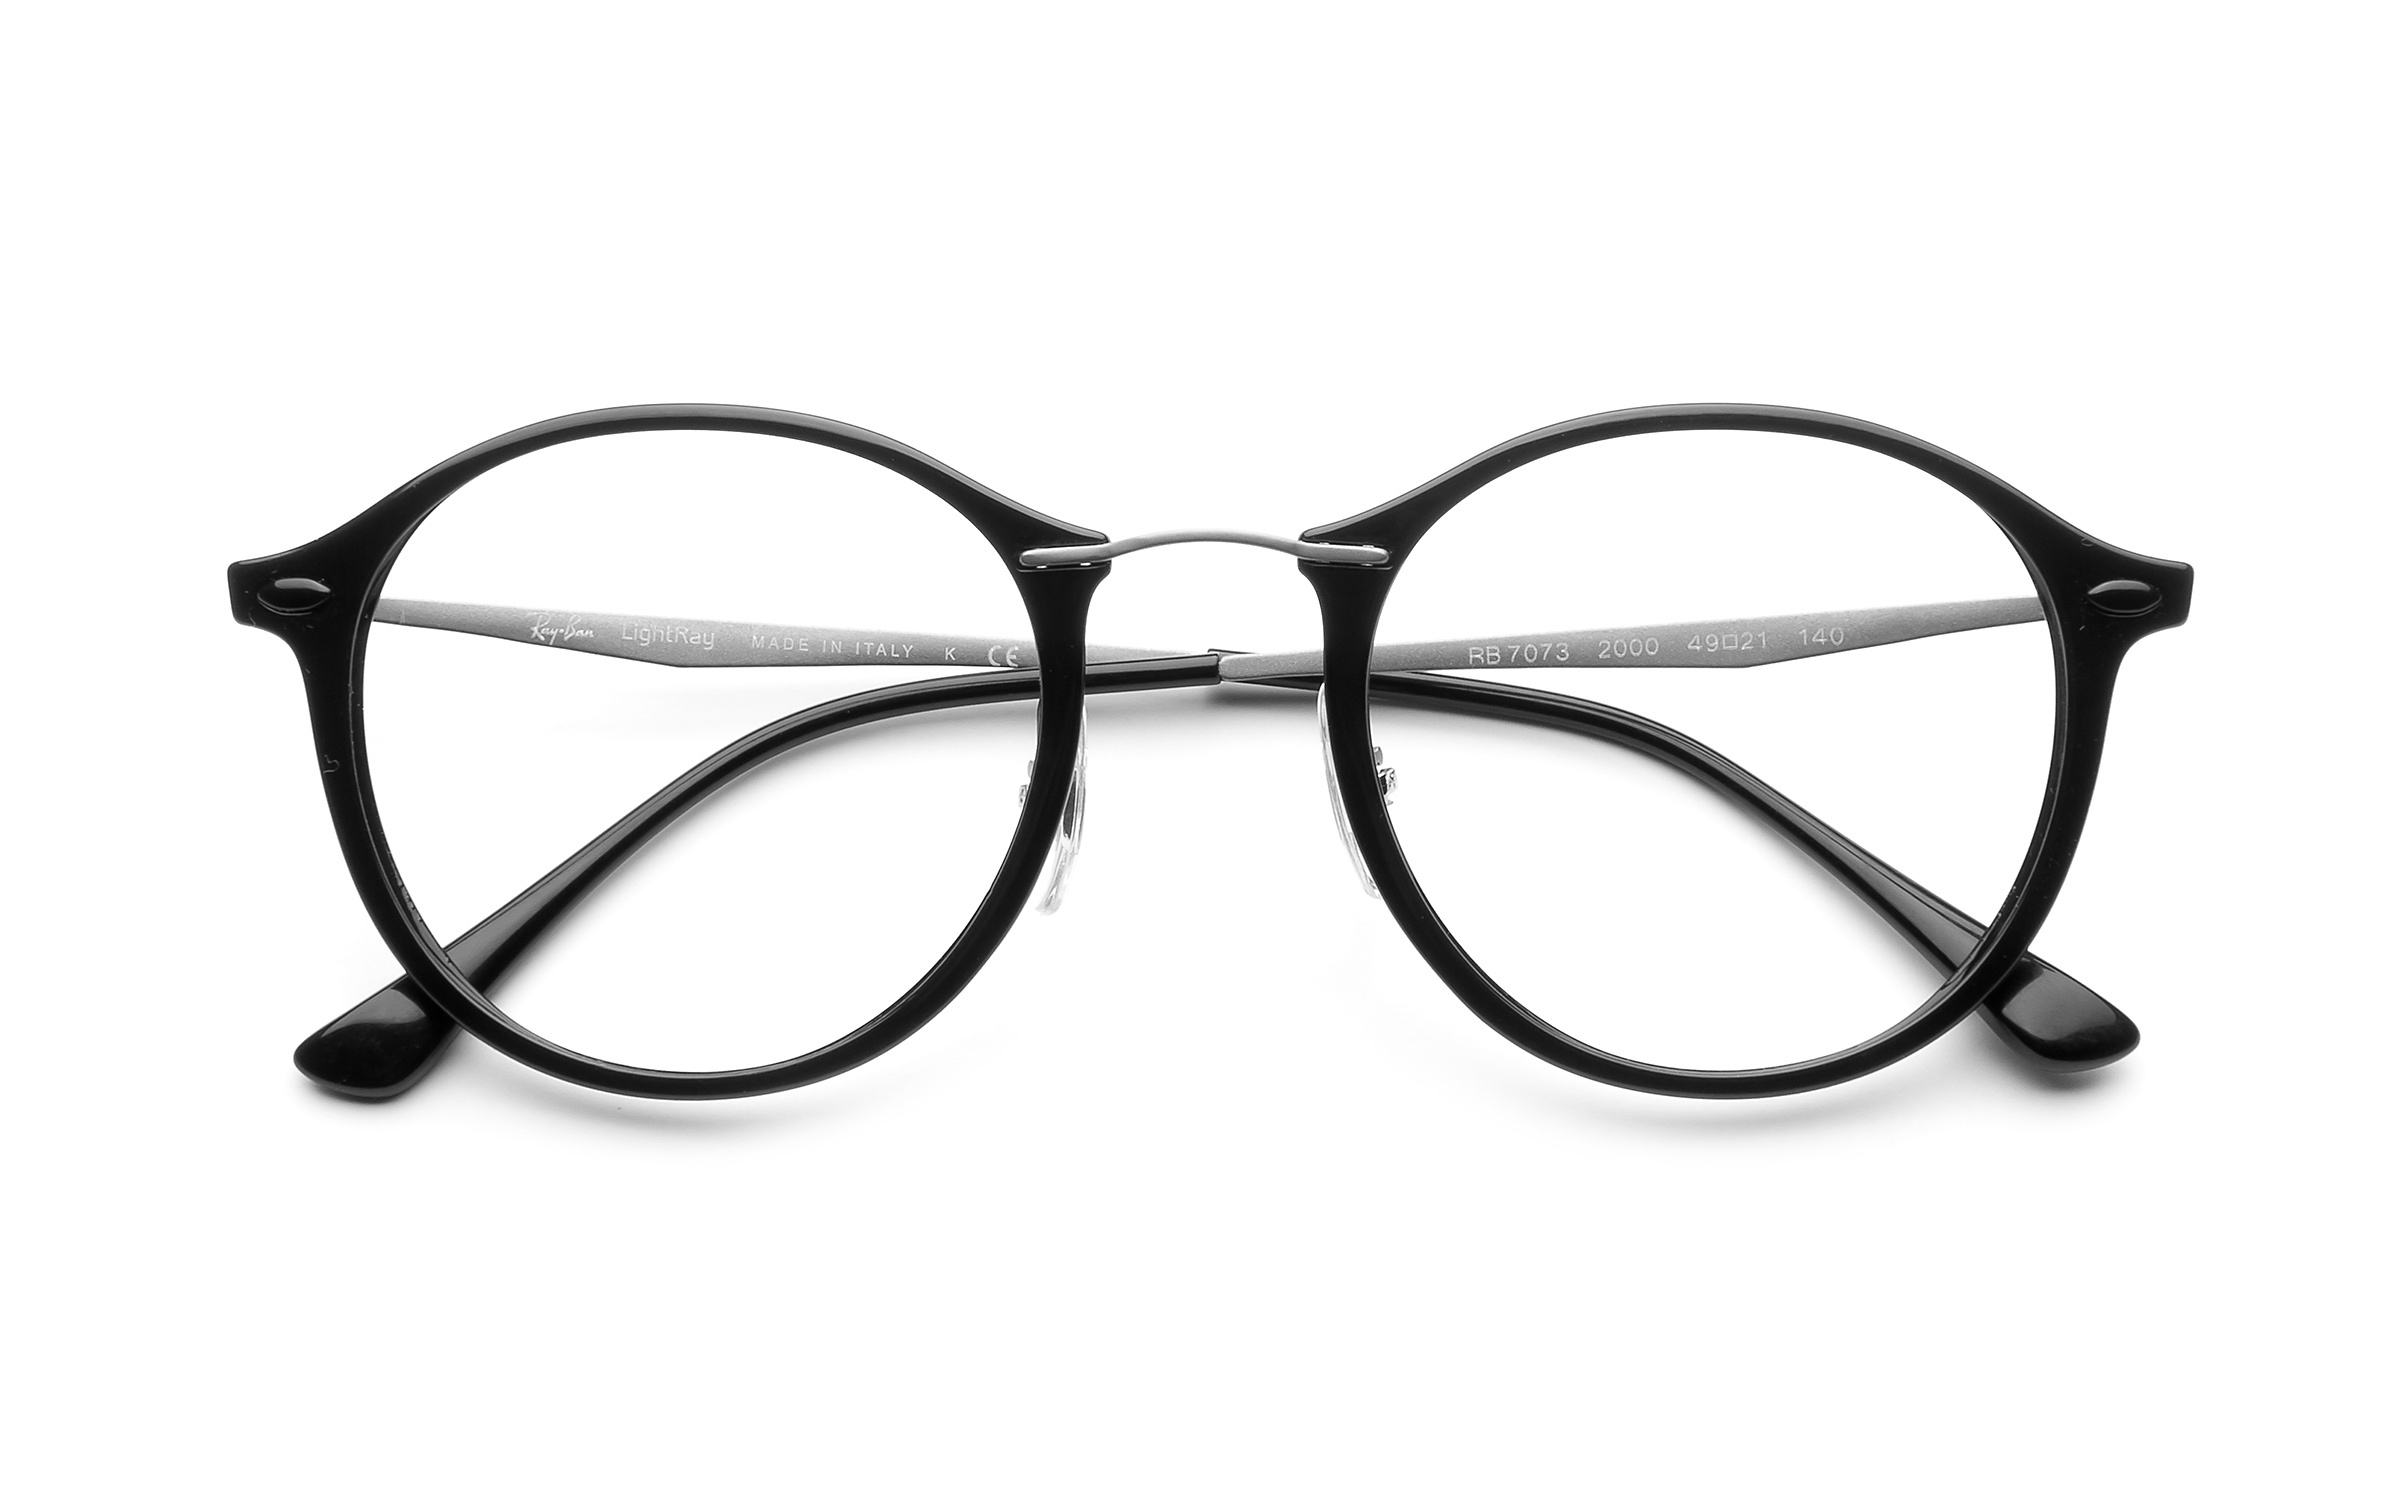 ray ban spectacles online  Shop for Ray-Ban glasses online and experience our friendly ...